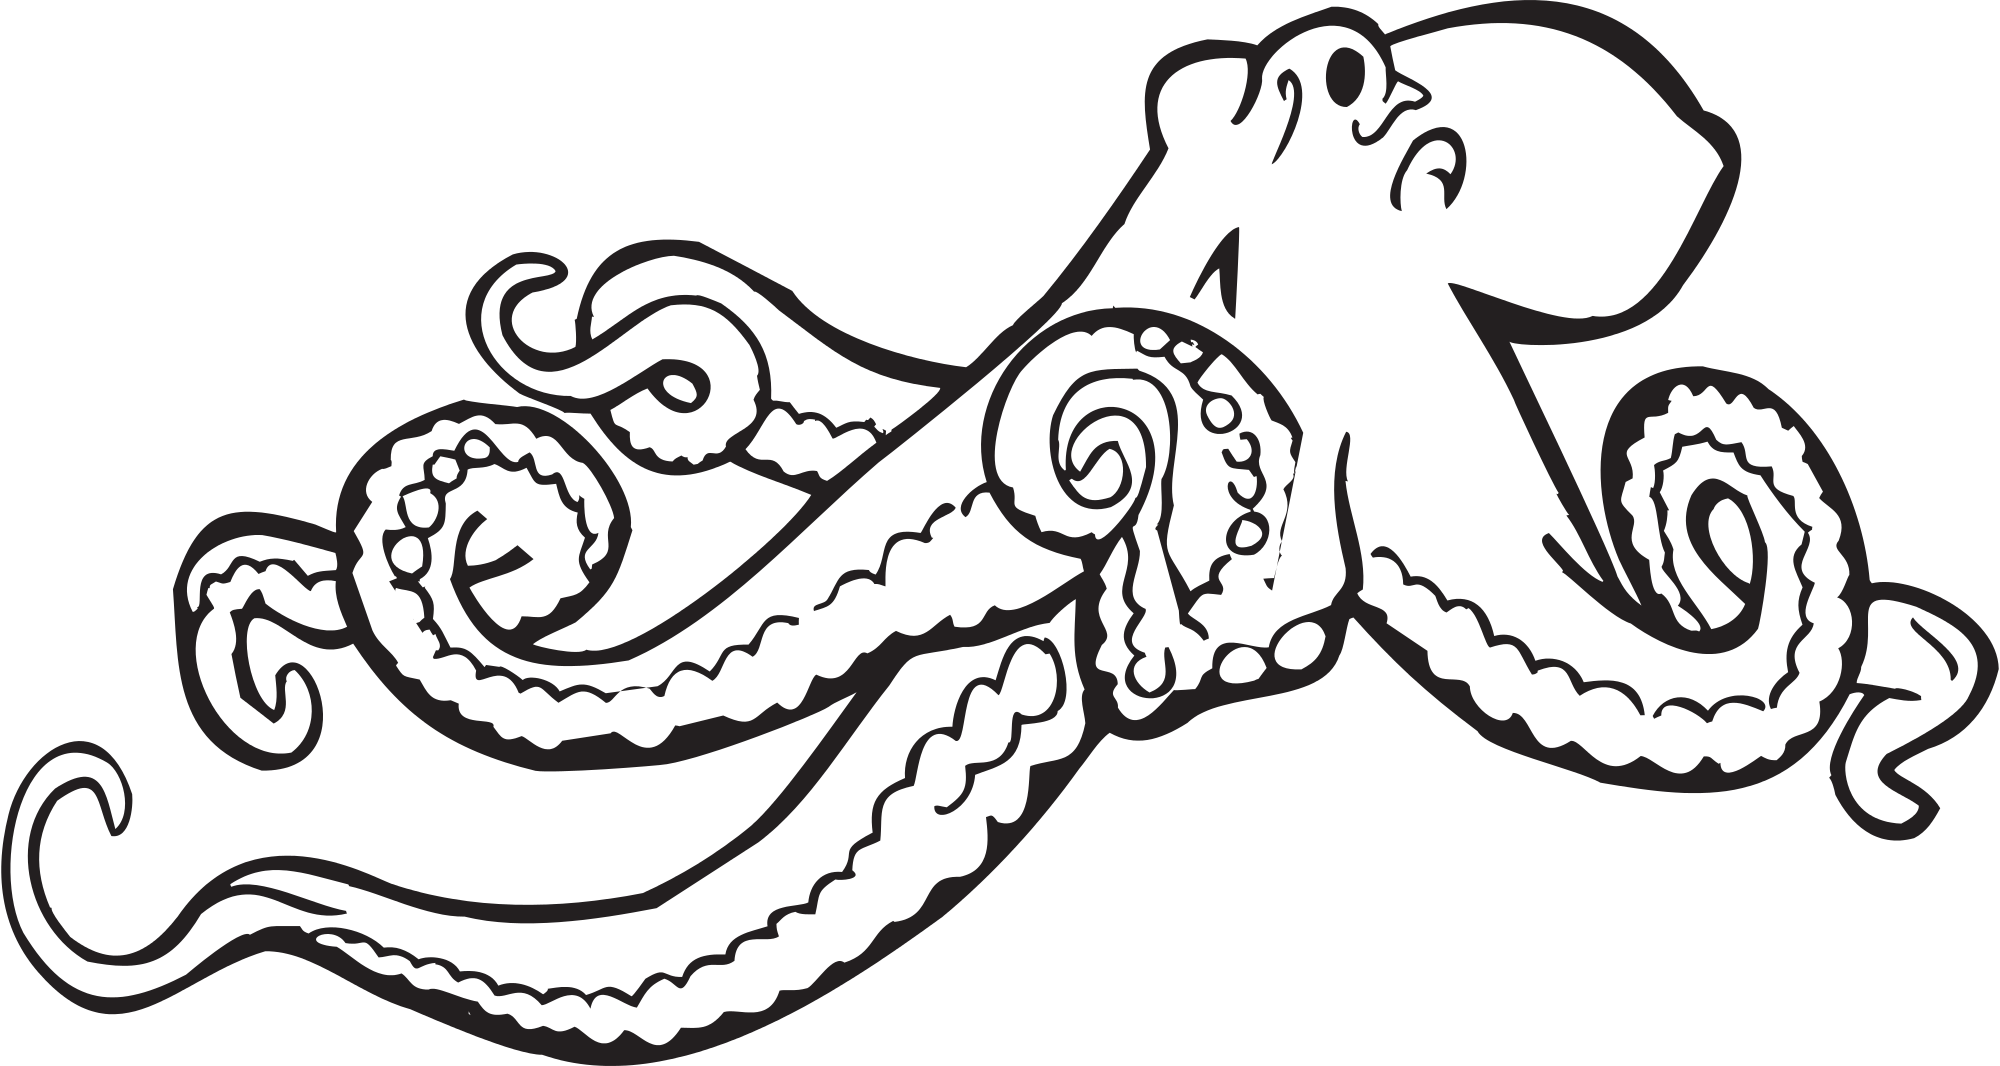 Svg clip art svg transparent library File:Octopus clipart.svg - Wikimedia Commons svg transparent library